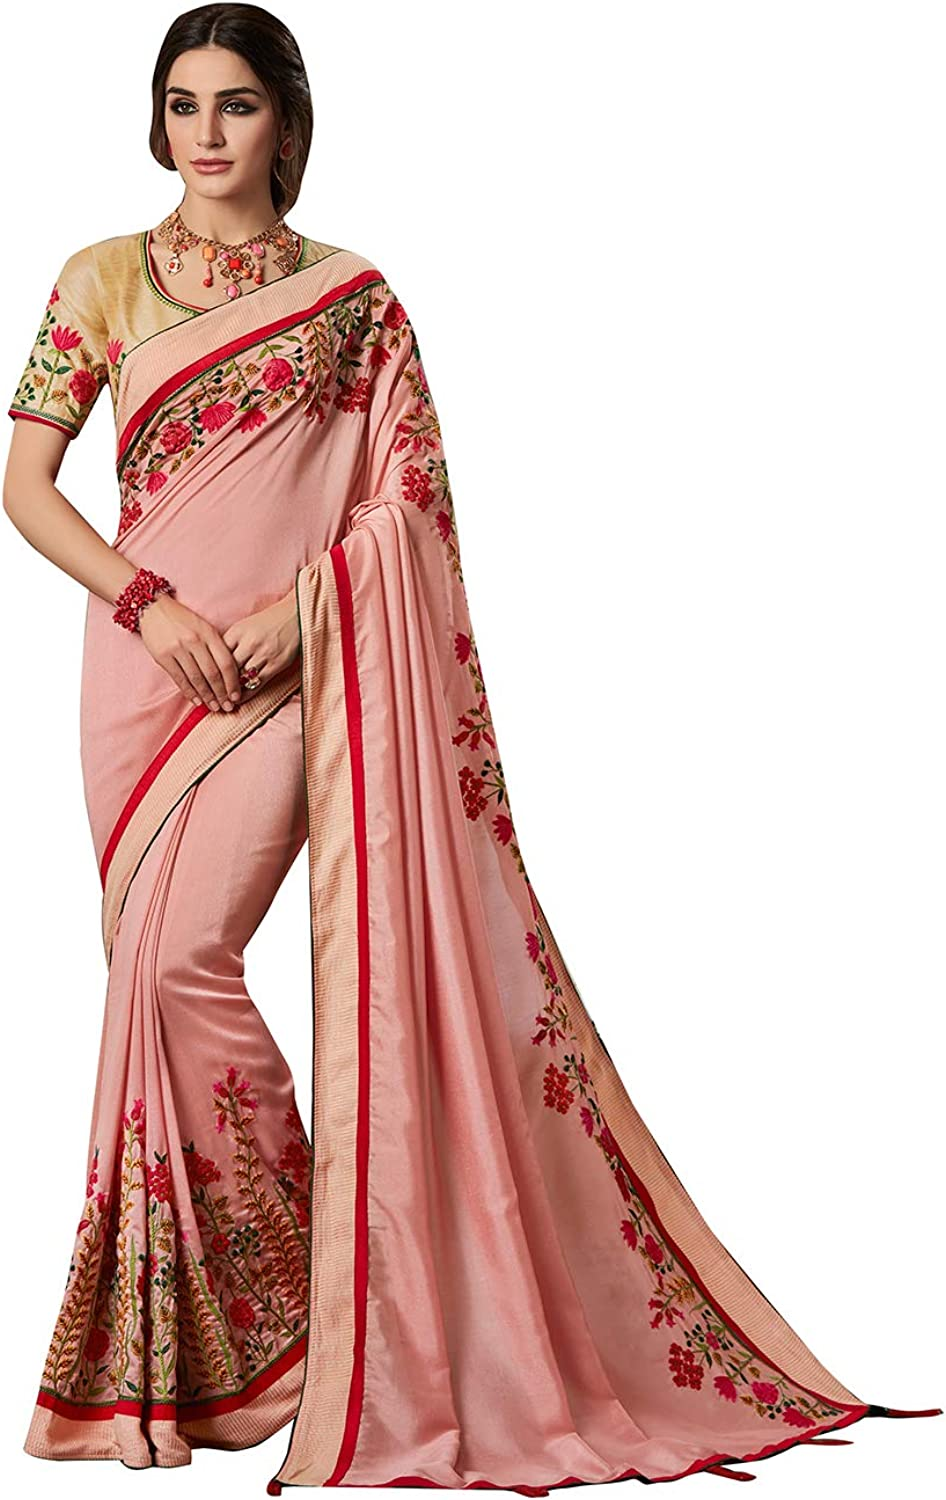 Maahir Garments Exclusive Blended Silk Baby Pink Colour Embroidery Work Fancy Saree with Dupion Blouse